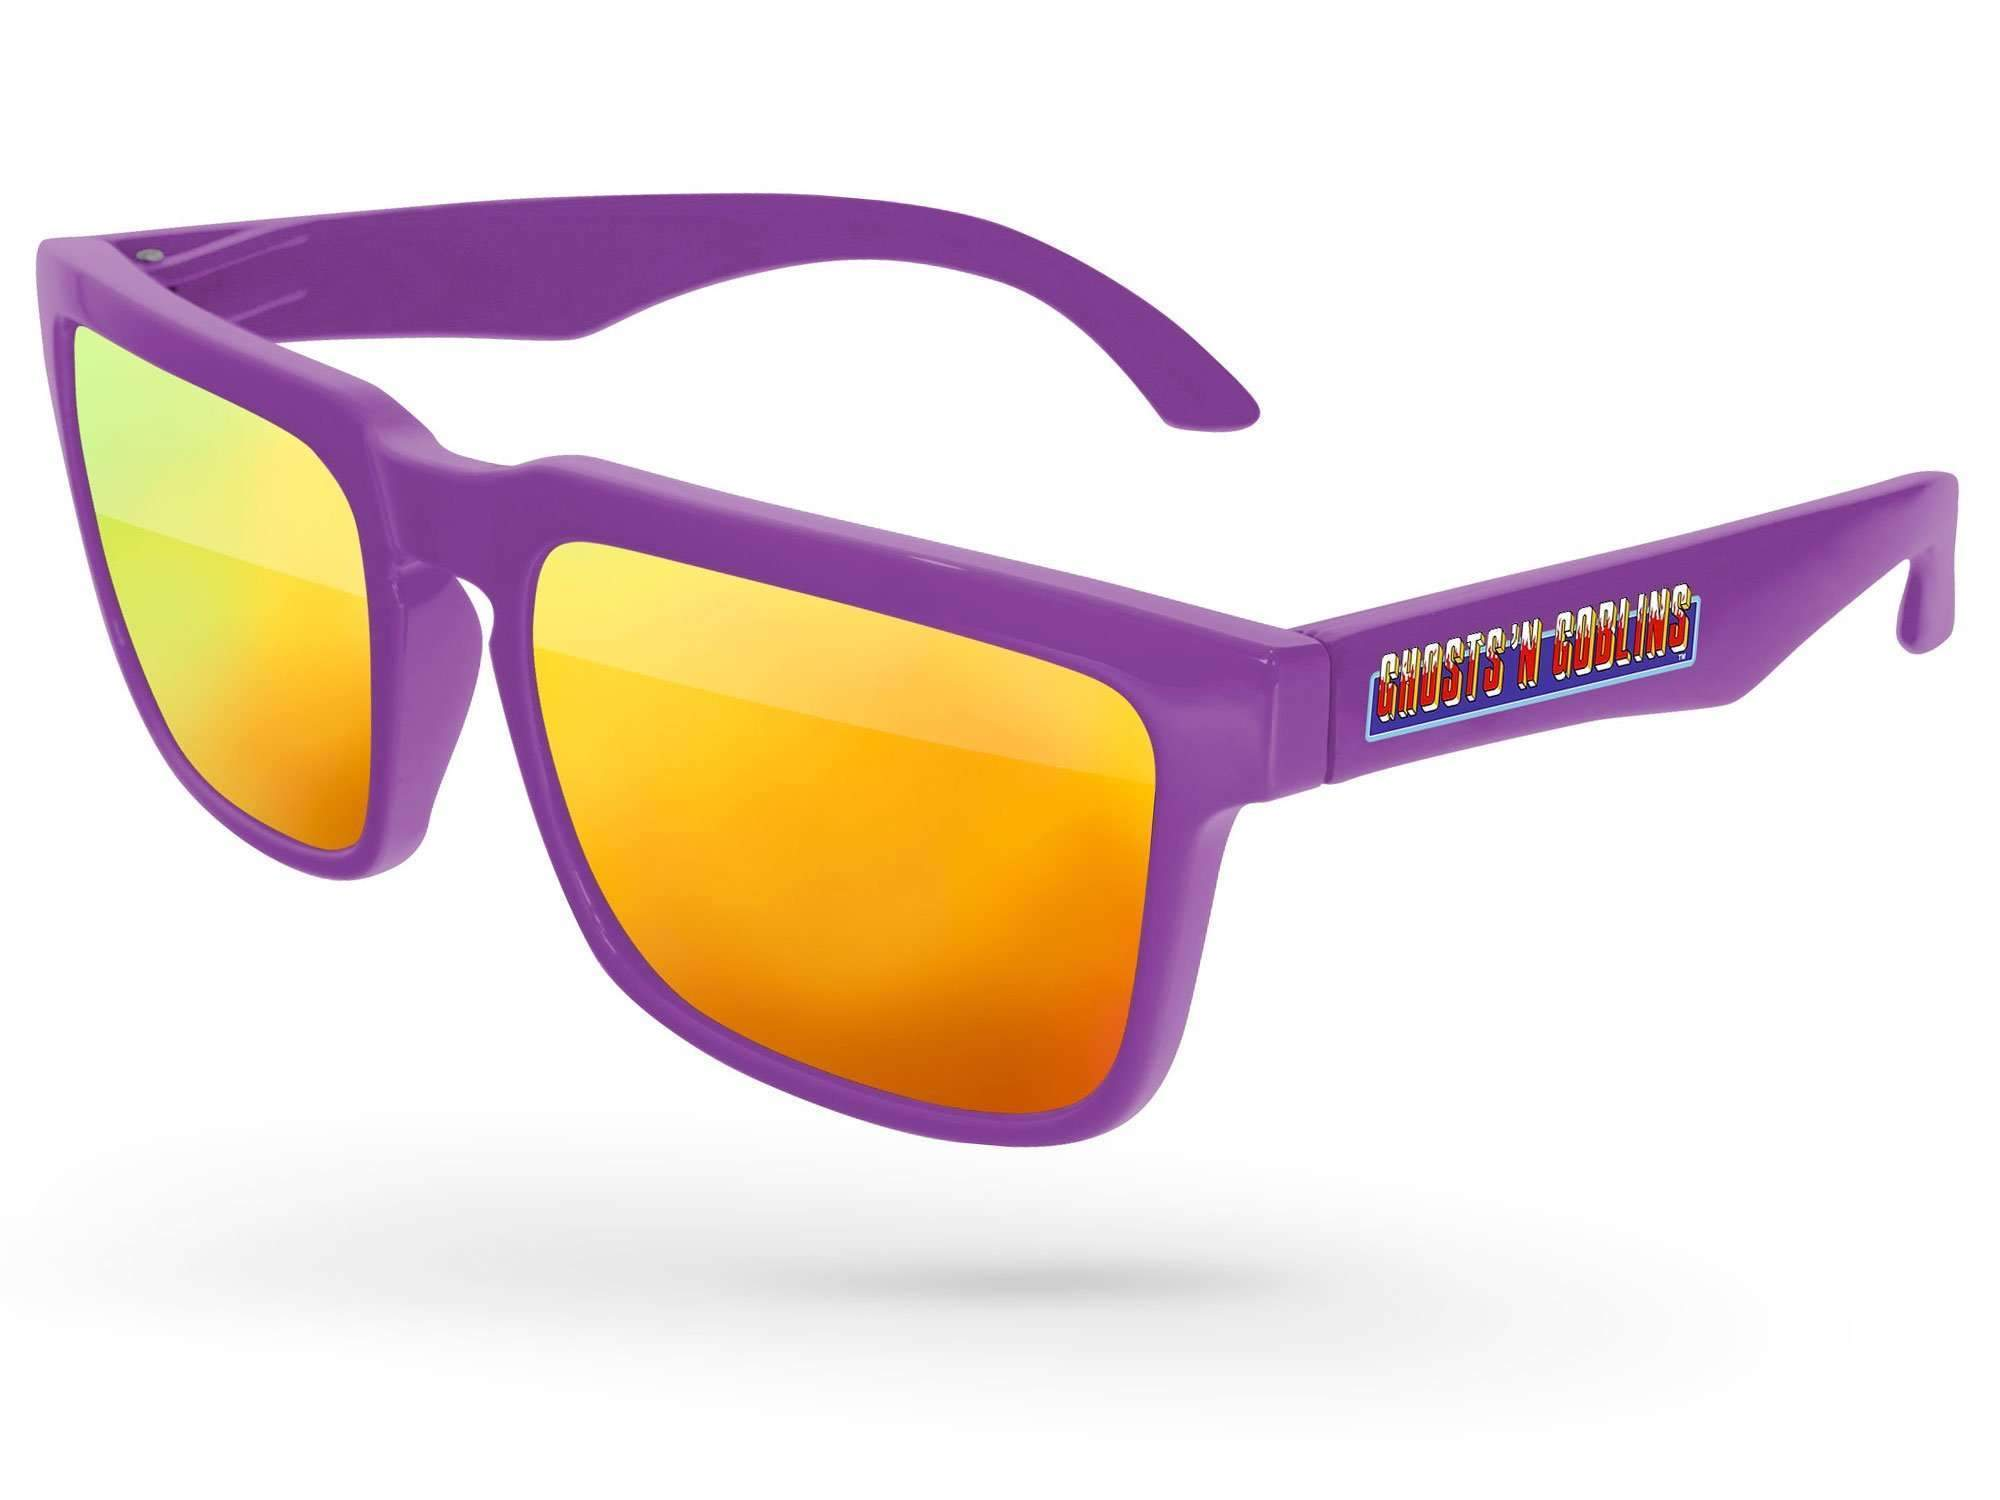 Heat Mirror Promotional Sunglasses w/ full-color temple imprint